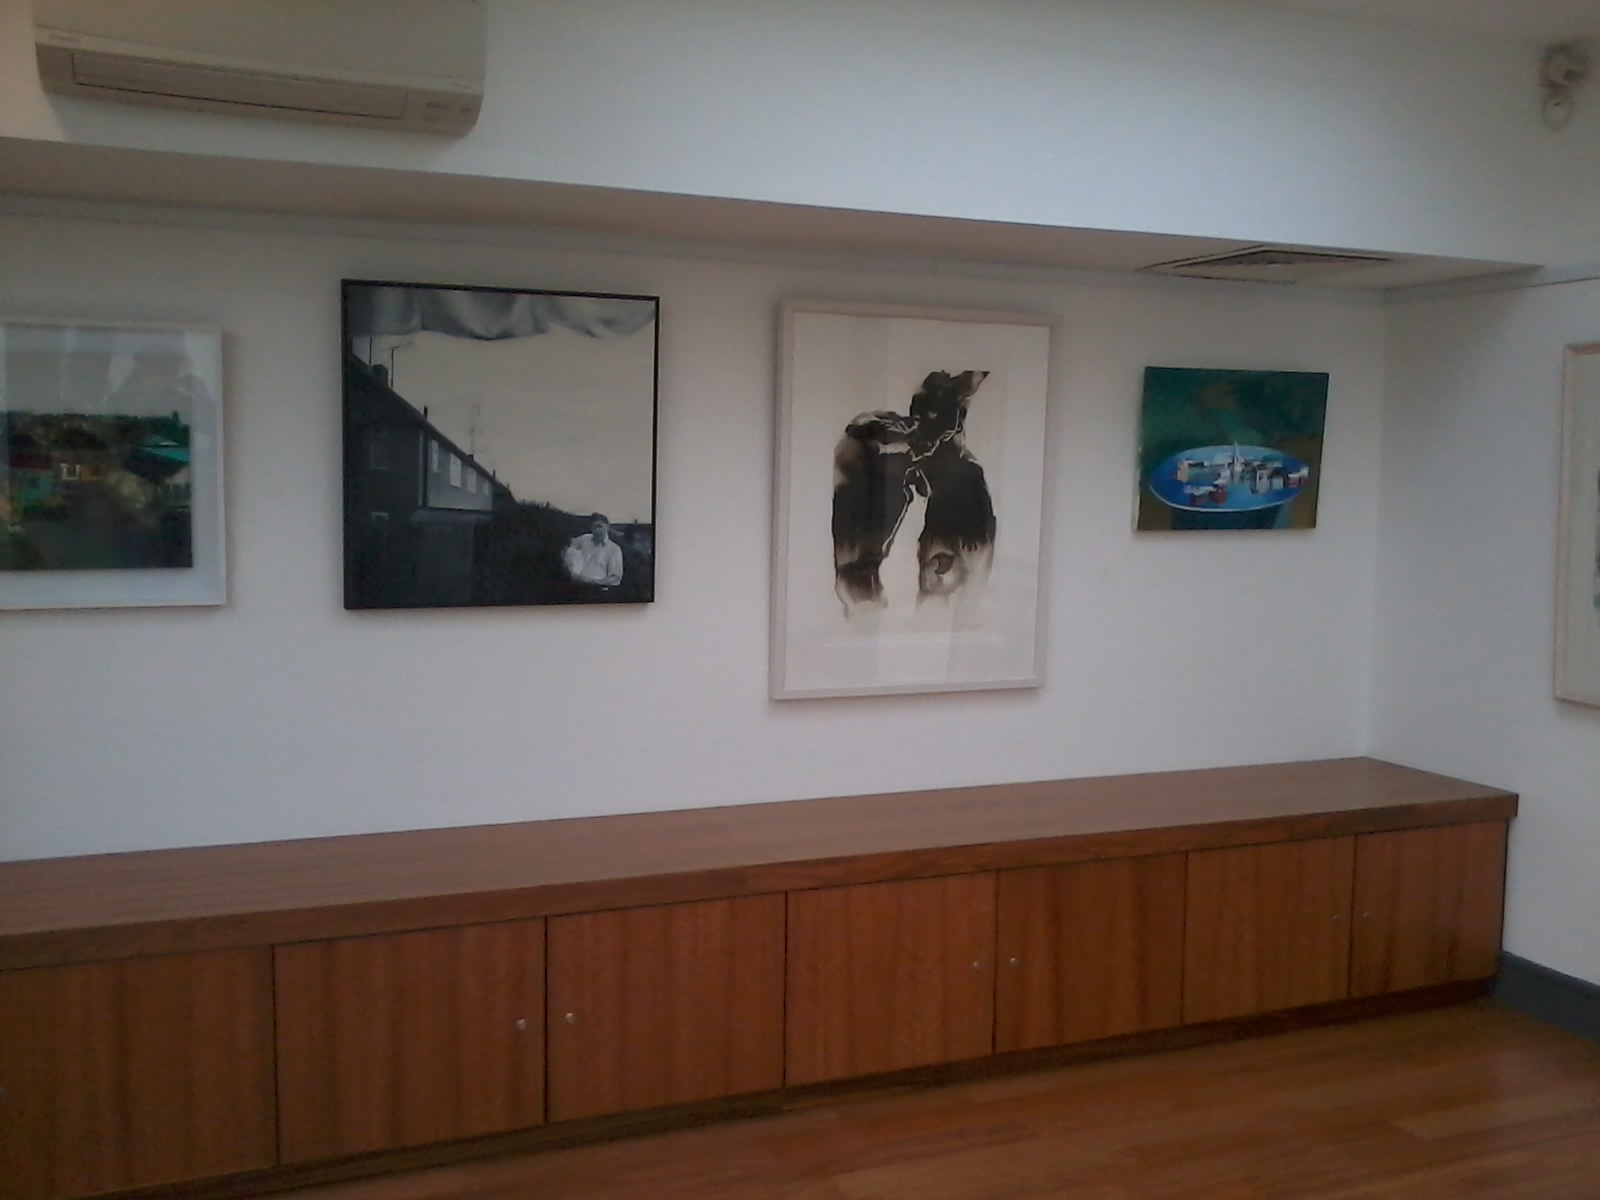 Previous Exhibitions | The Laois Arthouse and Library